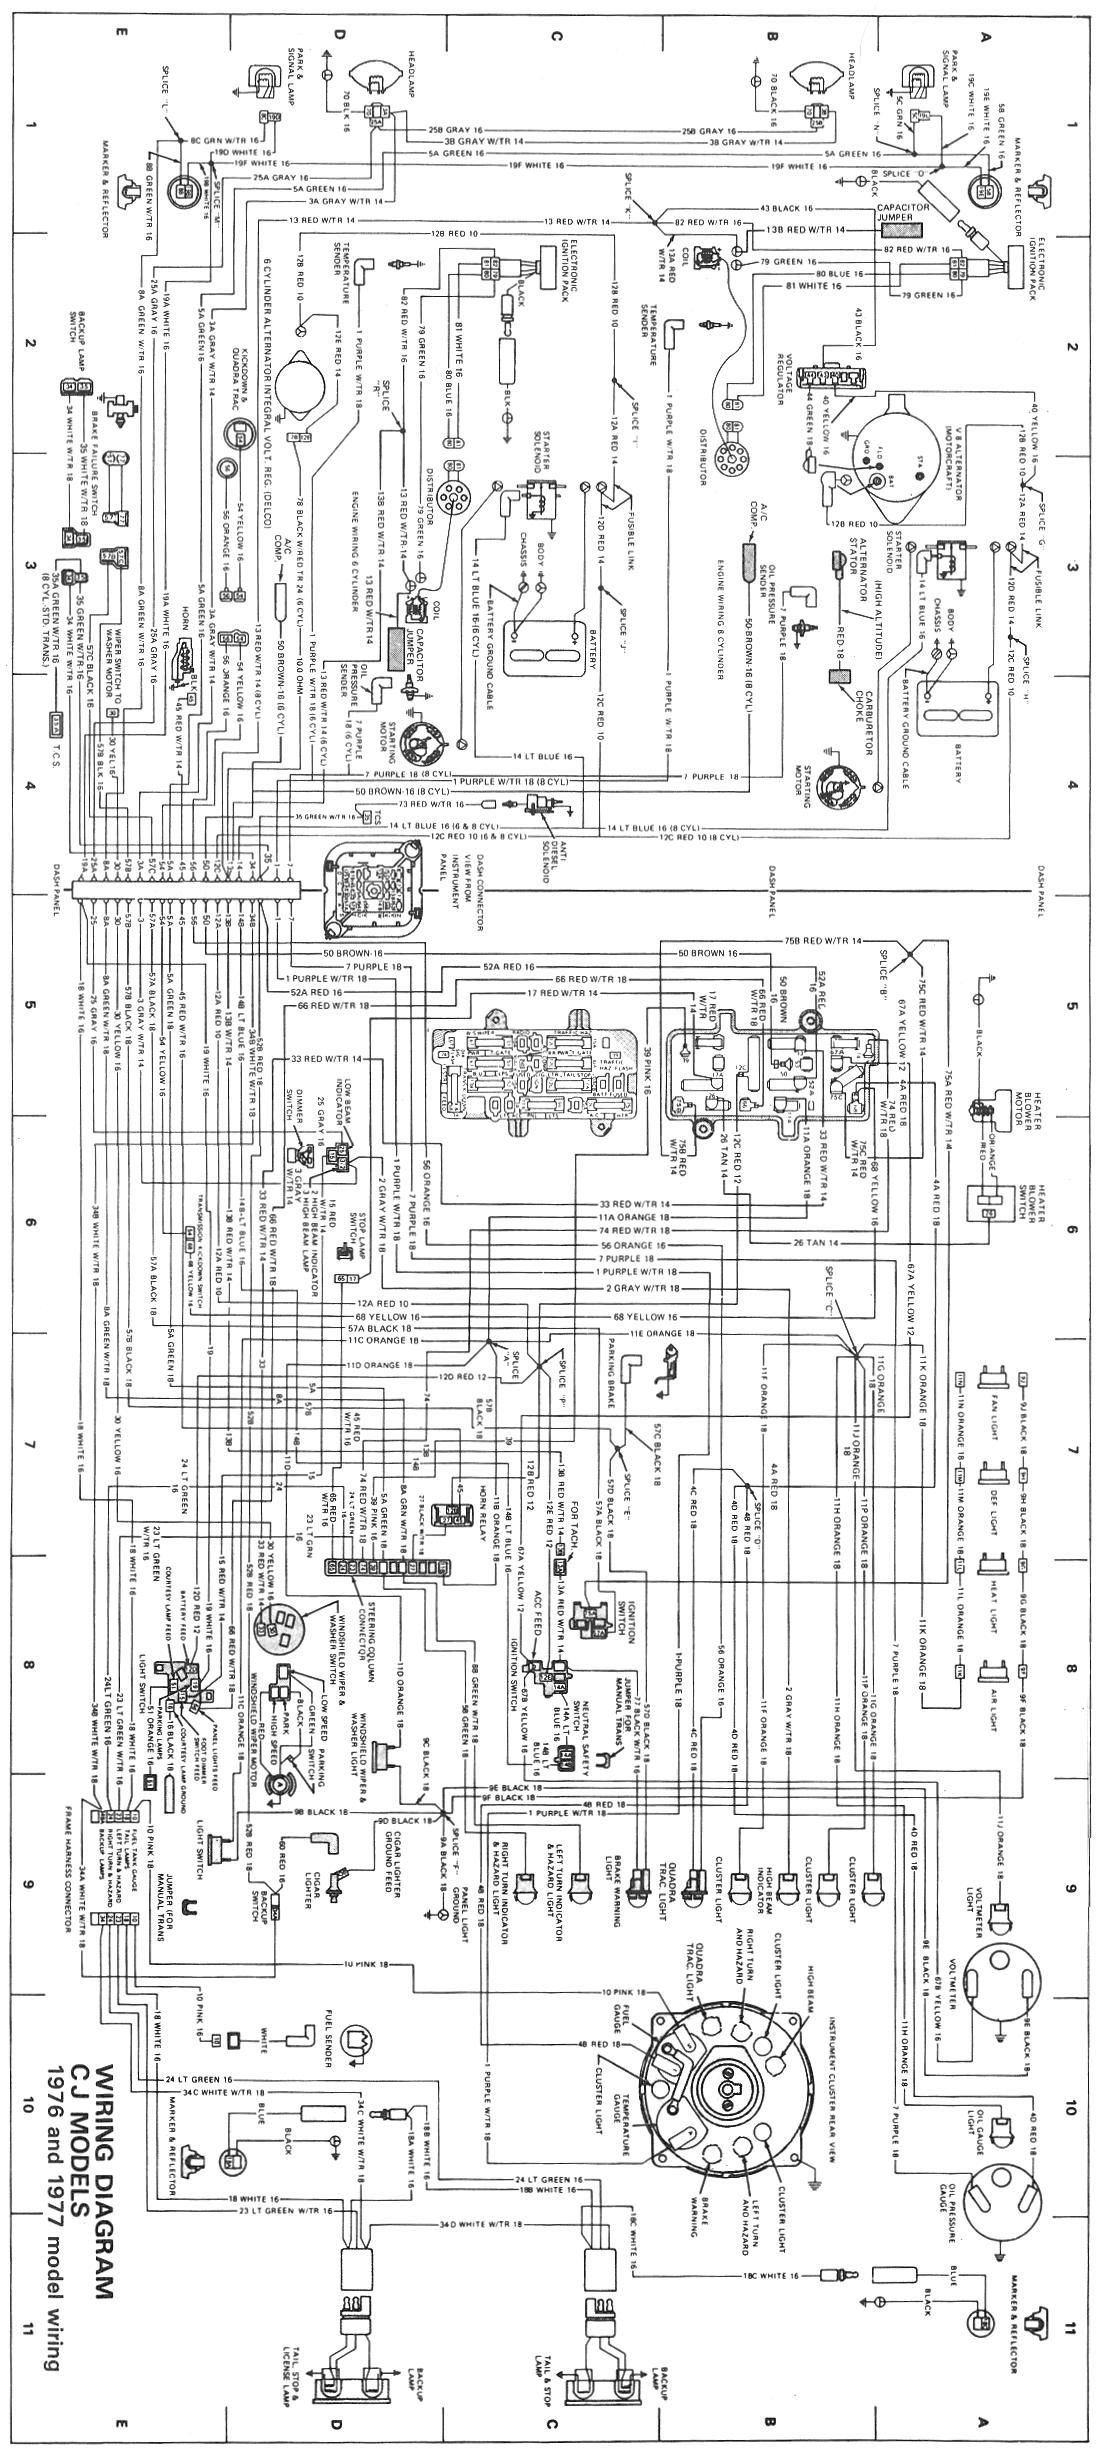 8d25ded6e3673519e155875e09844e5e cj wiring diagram 1976 1977 jpg 1,100�2,459 pixels 1976 jeep cj5 1975 jeep cj5 wiring harness at cos-gaming.co